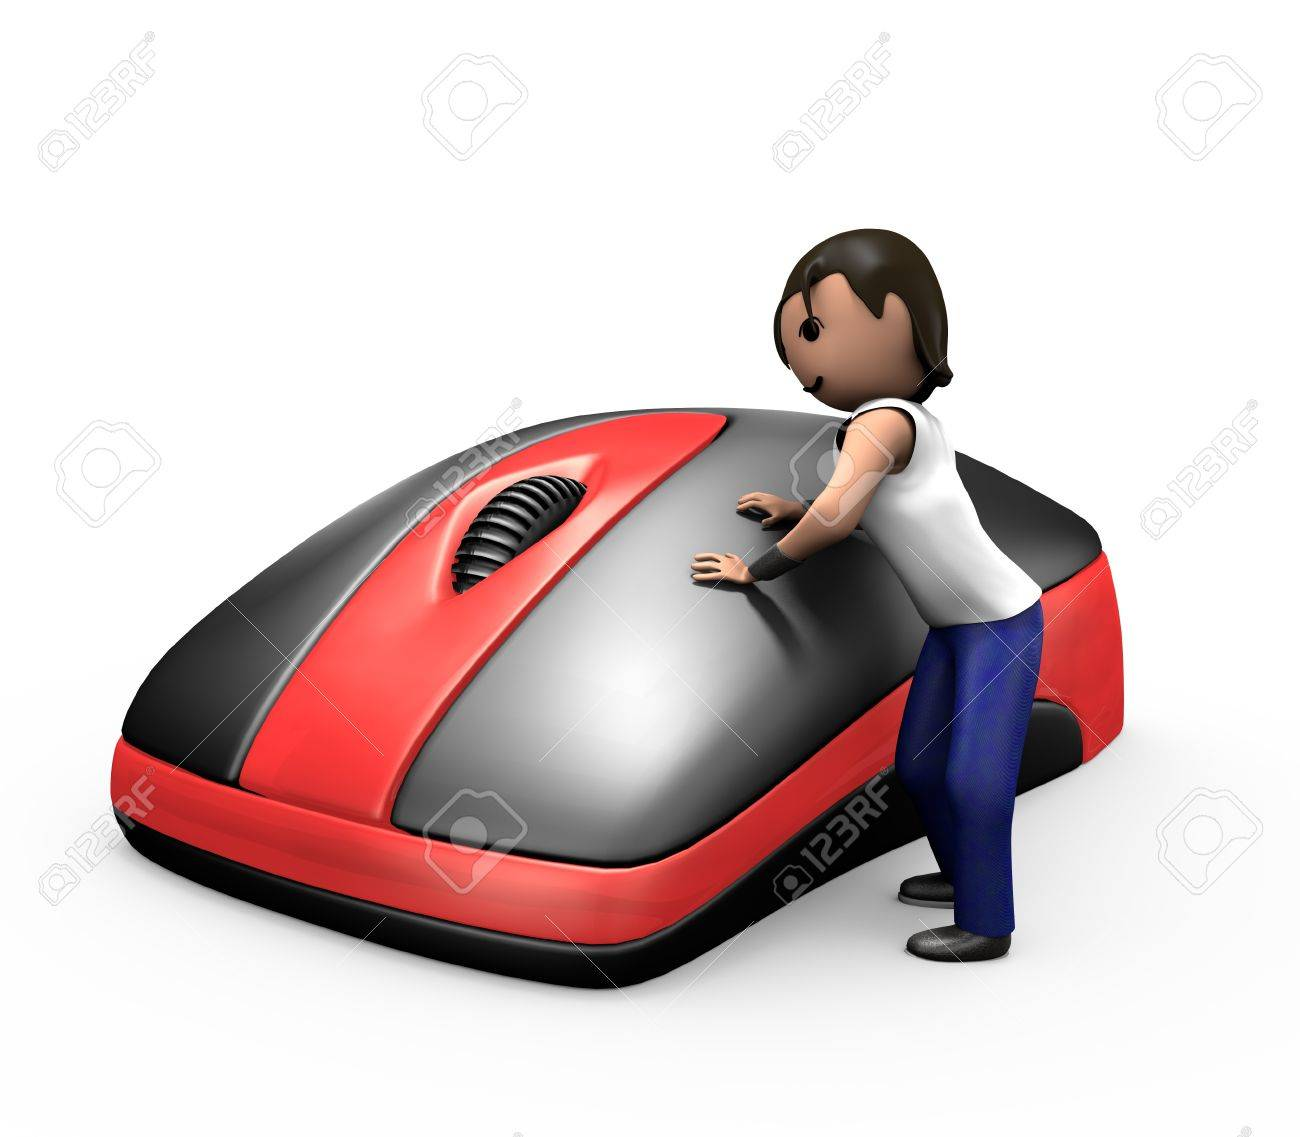 3d Render of Young Guy Clicking PC Mouse - 7841847